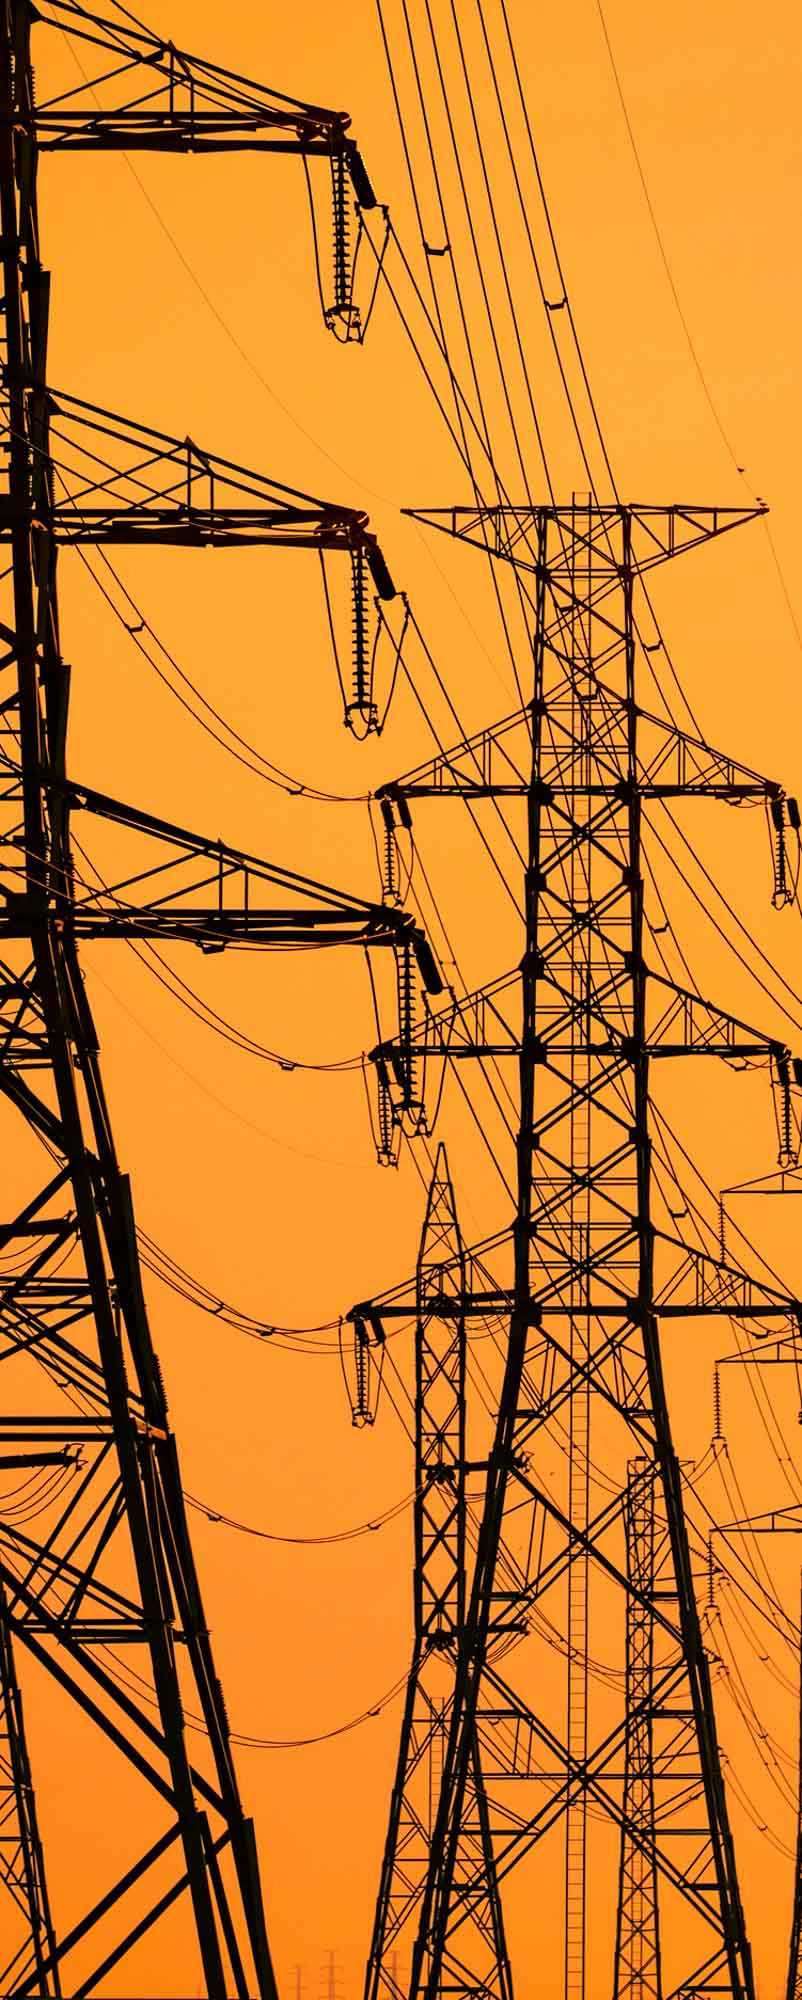 High voltage electric pole and transmission lines in the evening. Electricity pylons at sunset. Power and energy. Energy conservation. High voltage grid tower with wire cable at distribution station.